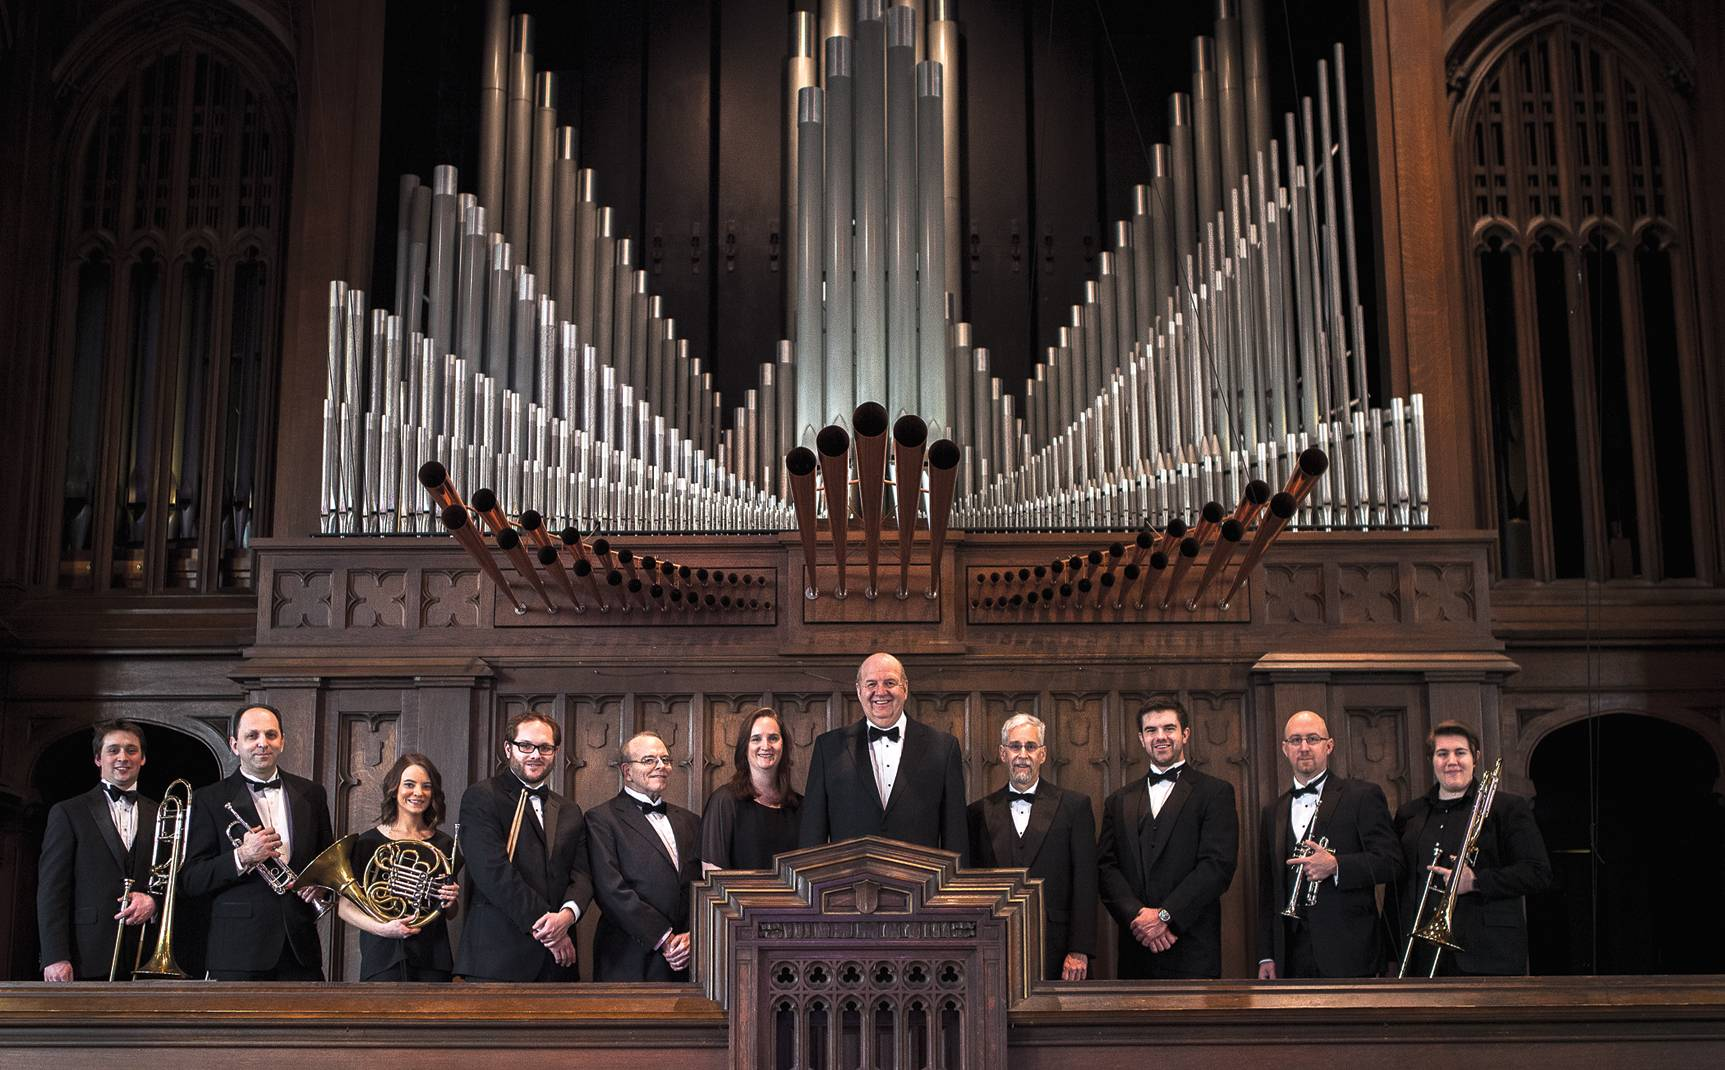 The Chicago Gargoyle Brass and Organ Ensemble will play works based on melodies composed by Protestant Reformation leader Martin Luther.Chicago Gargoyle Brass and Organ Ensemble